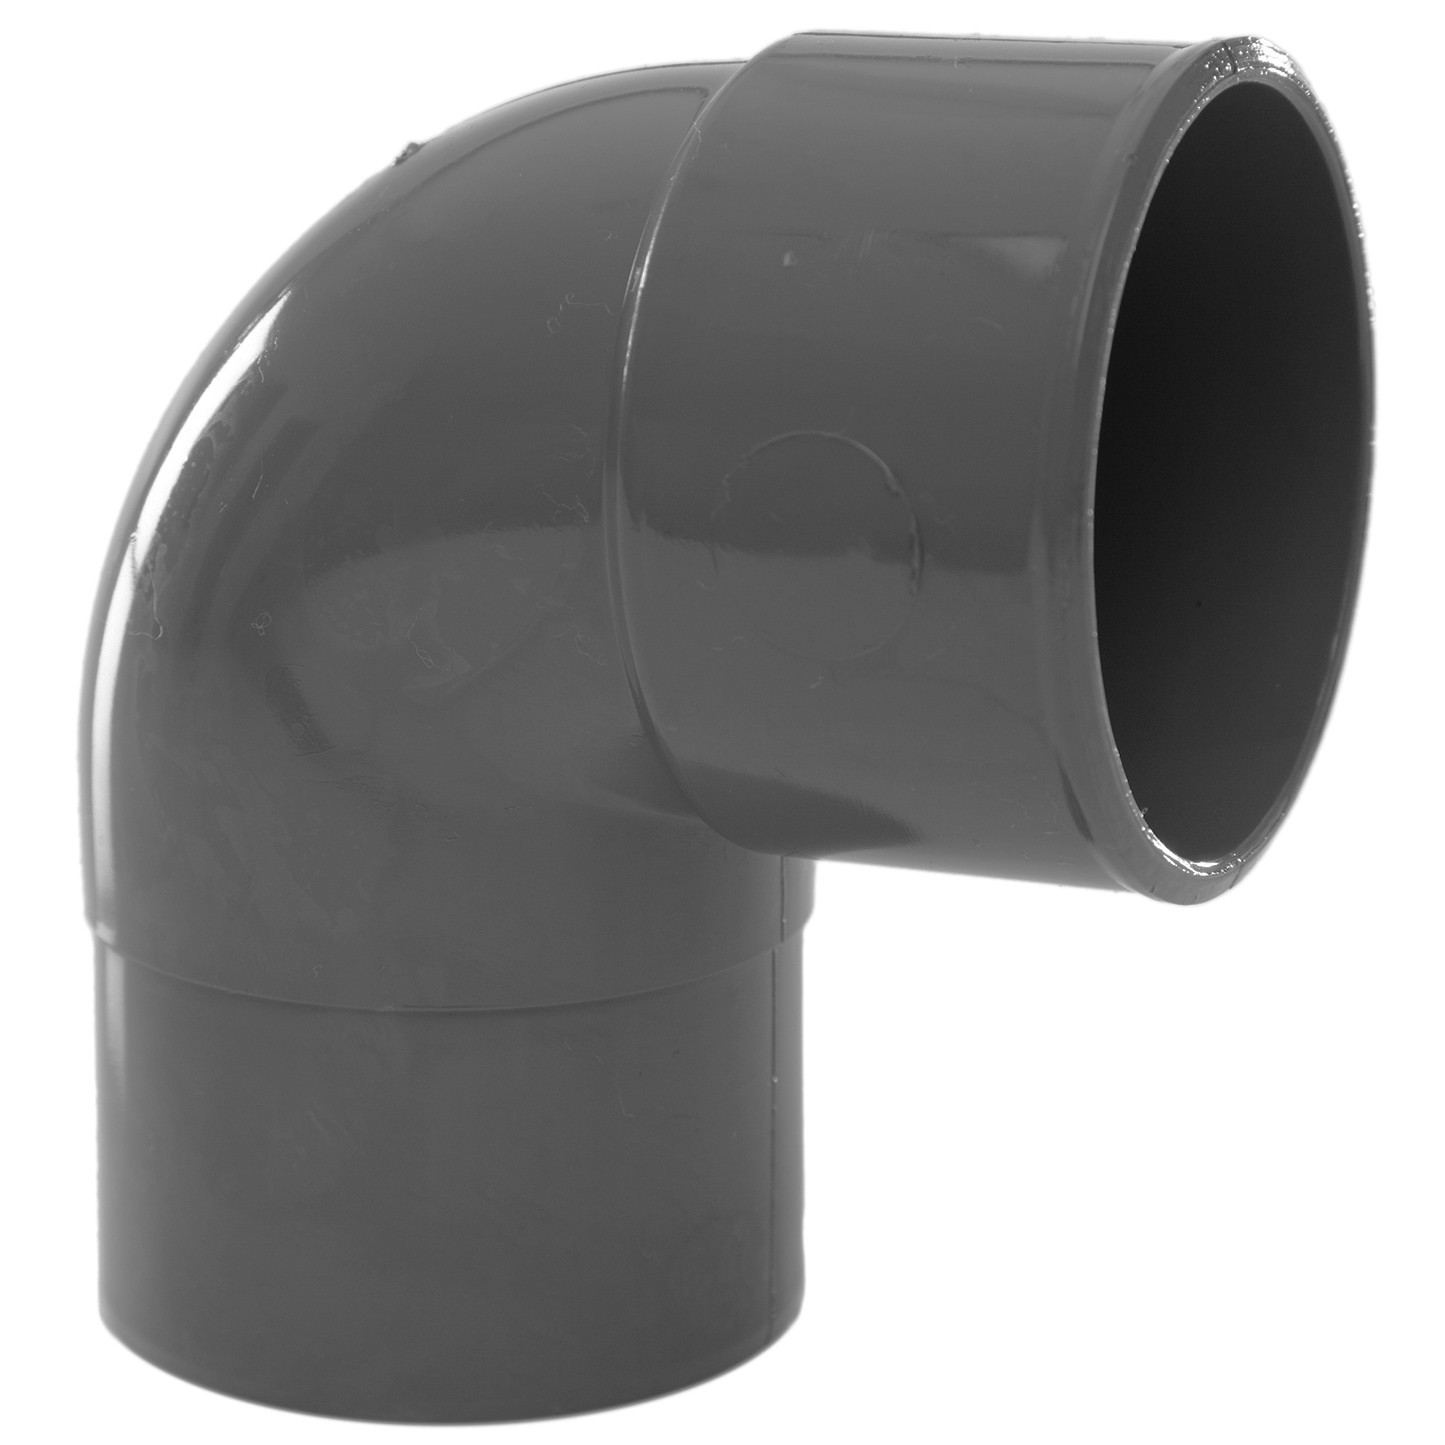 Polypipe 50mm Solvent Weld Waste 92.5 Degree Swivel Bend - Grey